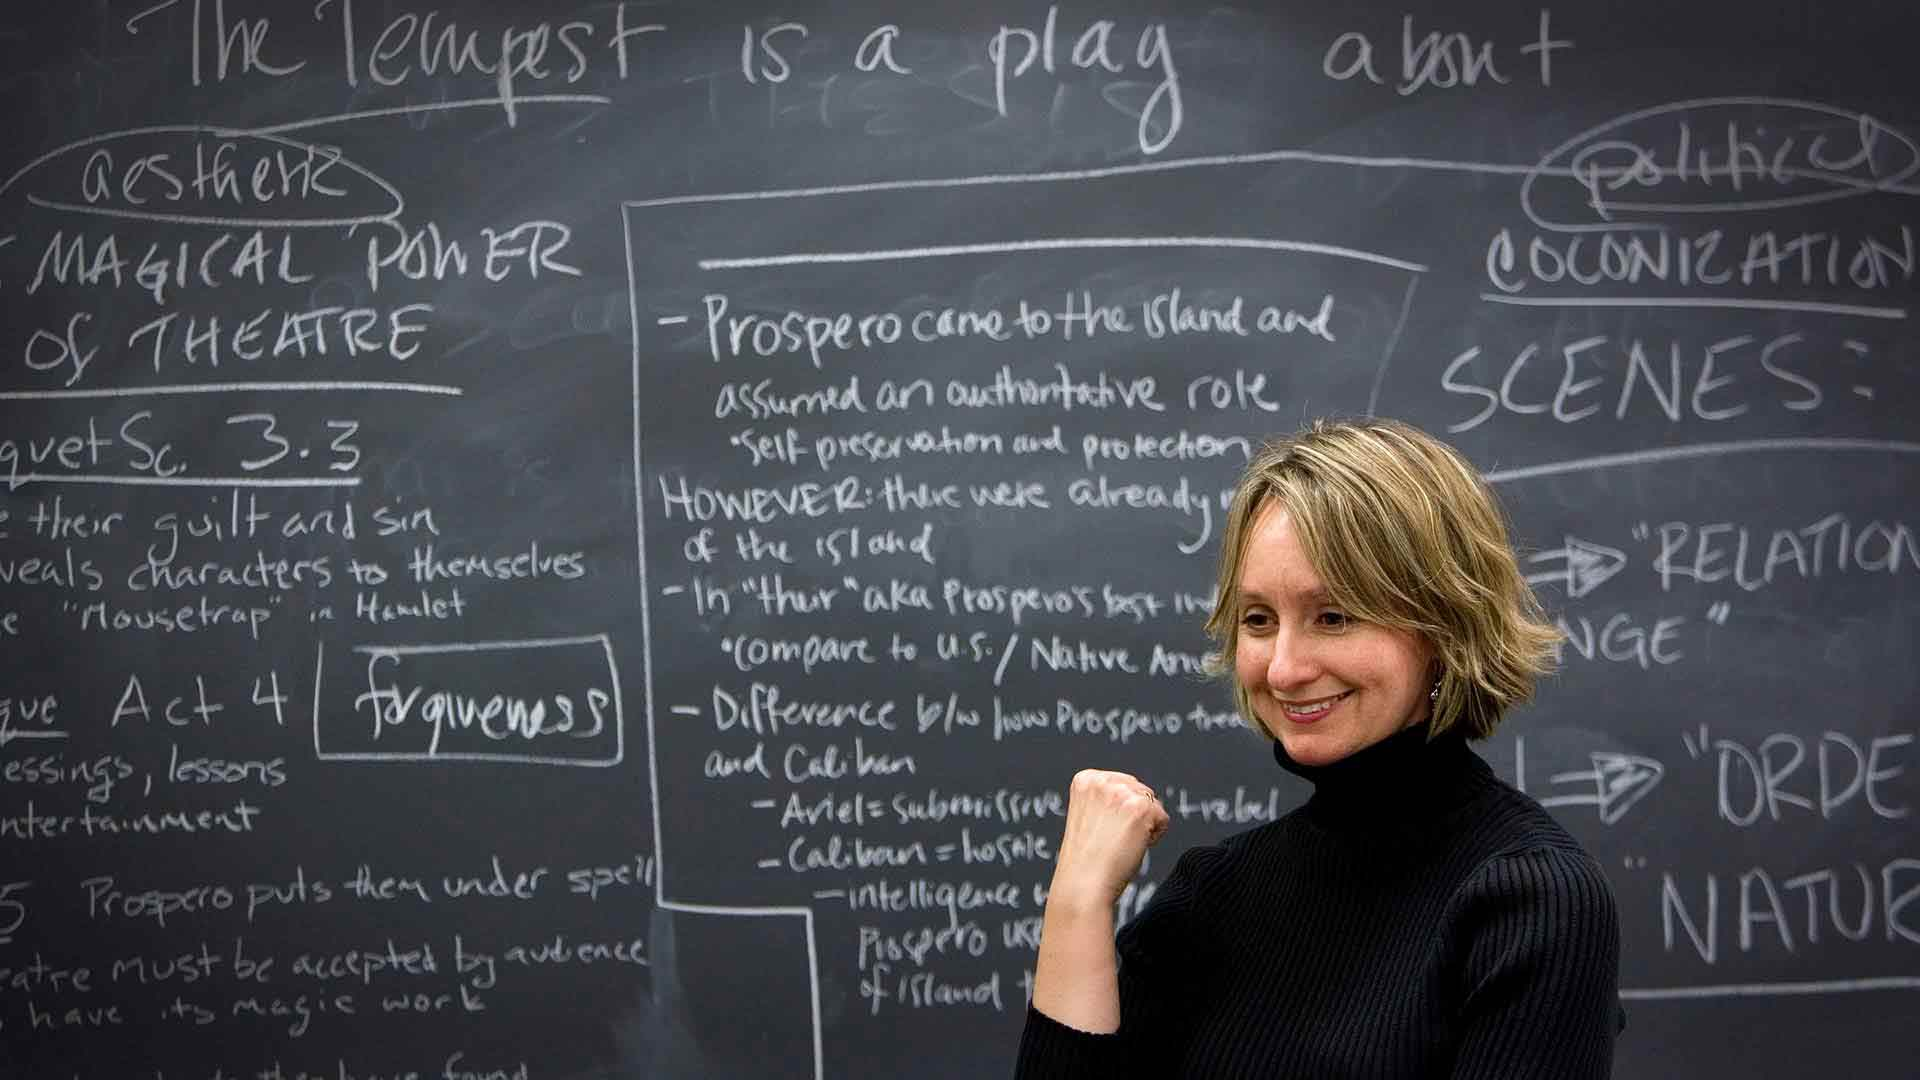 Dr. Amy Muse in front a chalkboard teaches a class on The Tempest